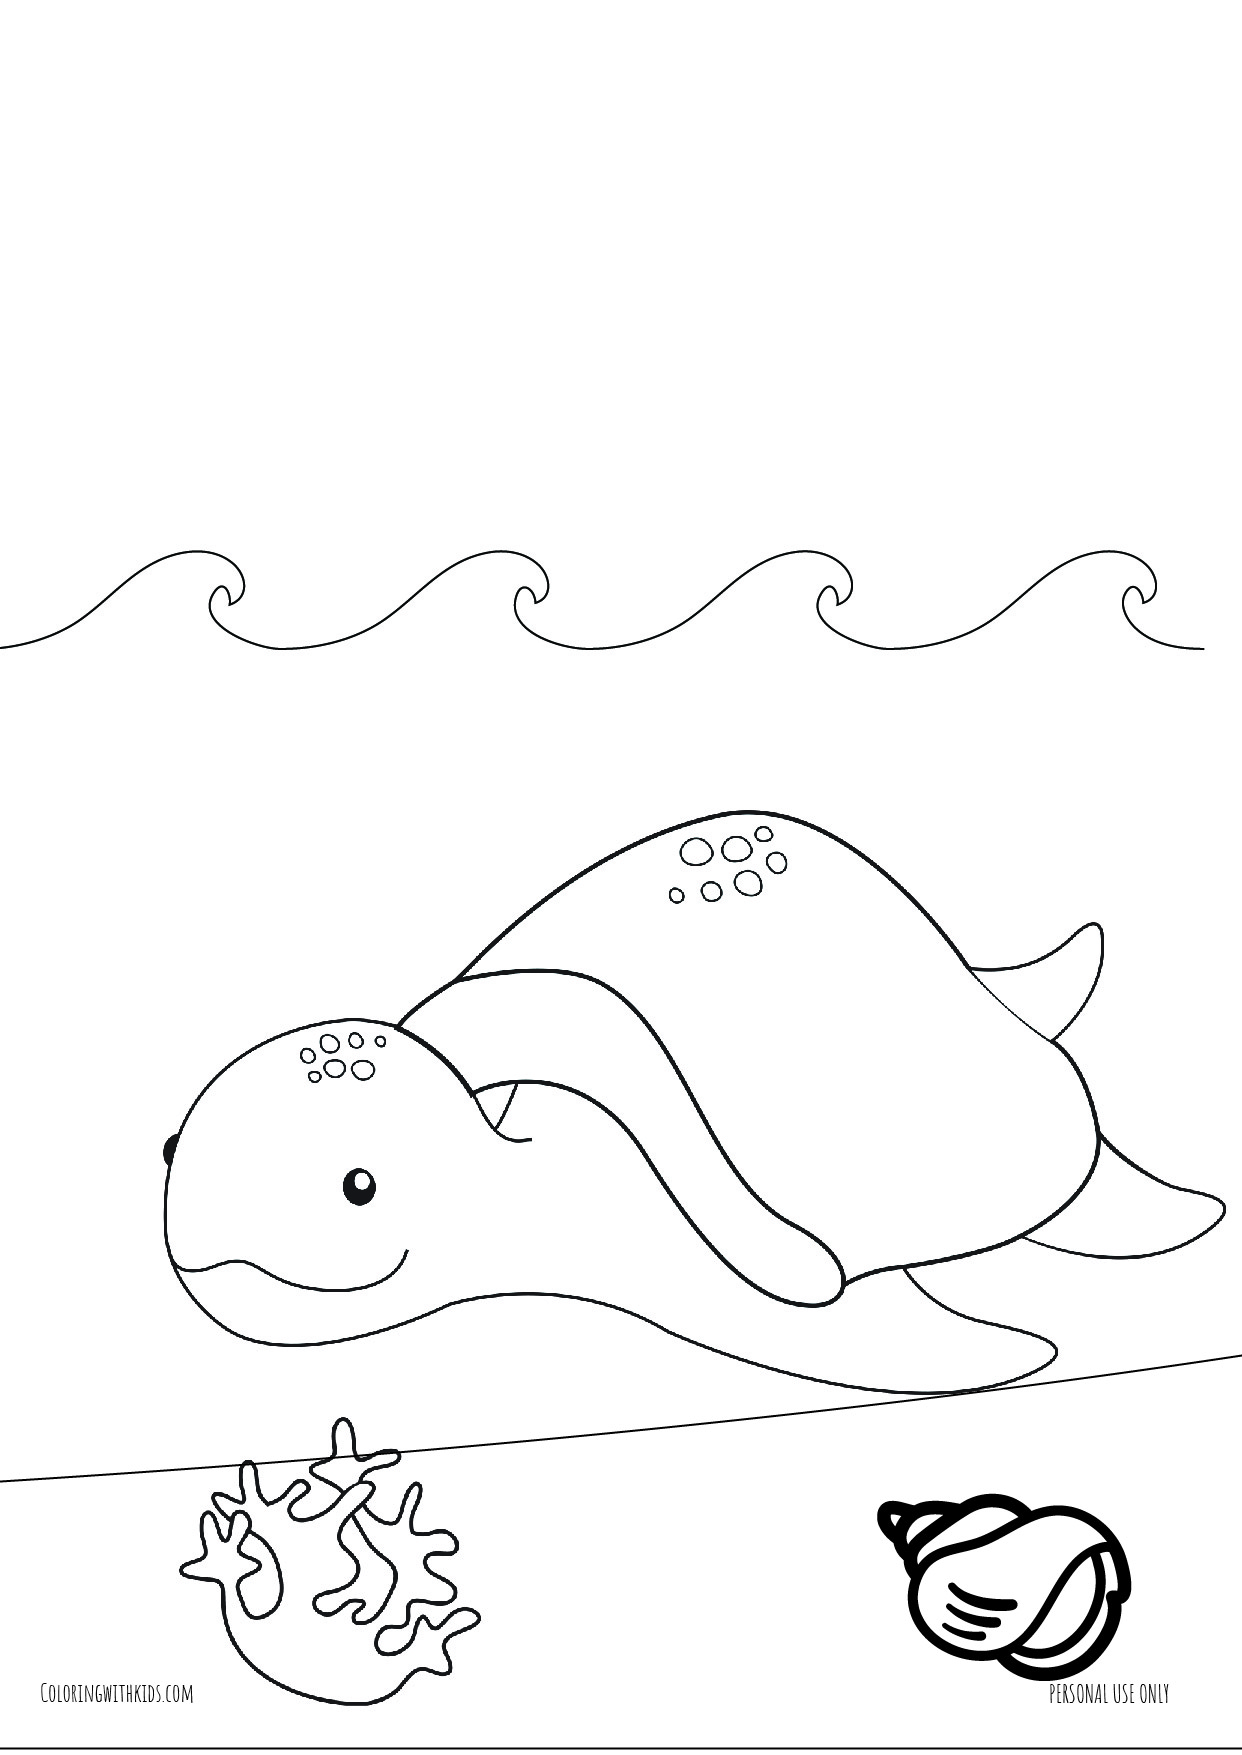 Turtle swimmig coloring pages